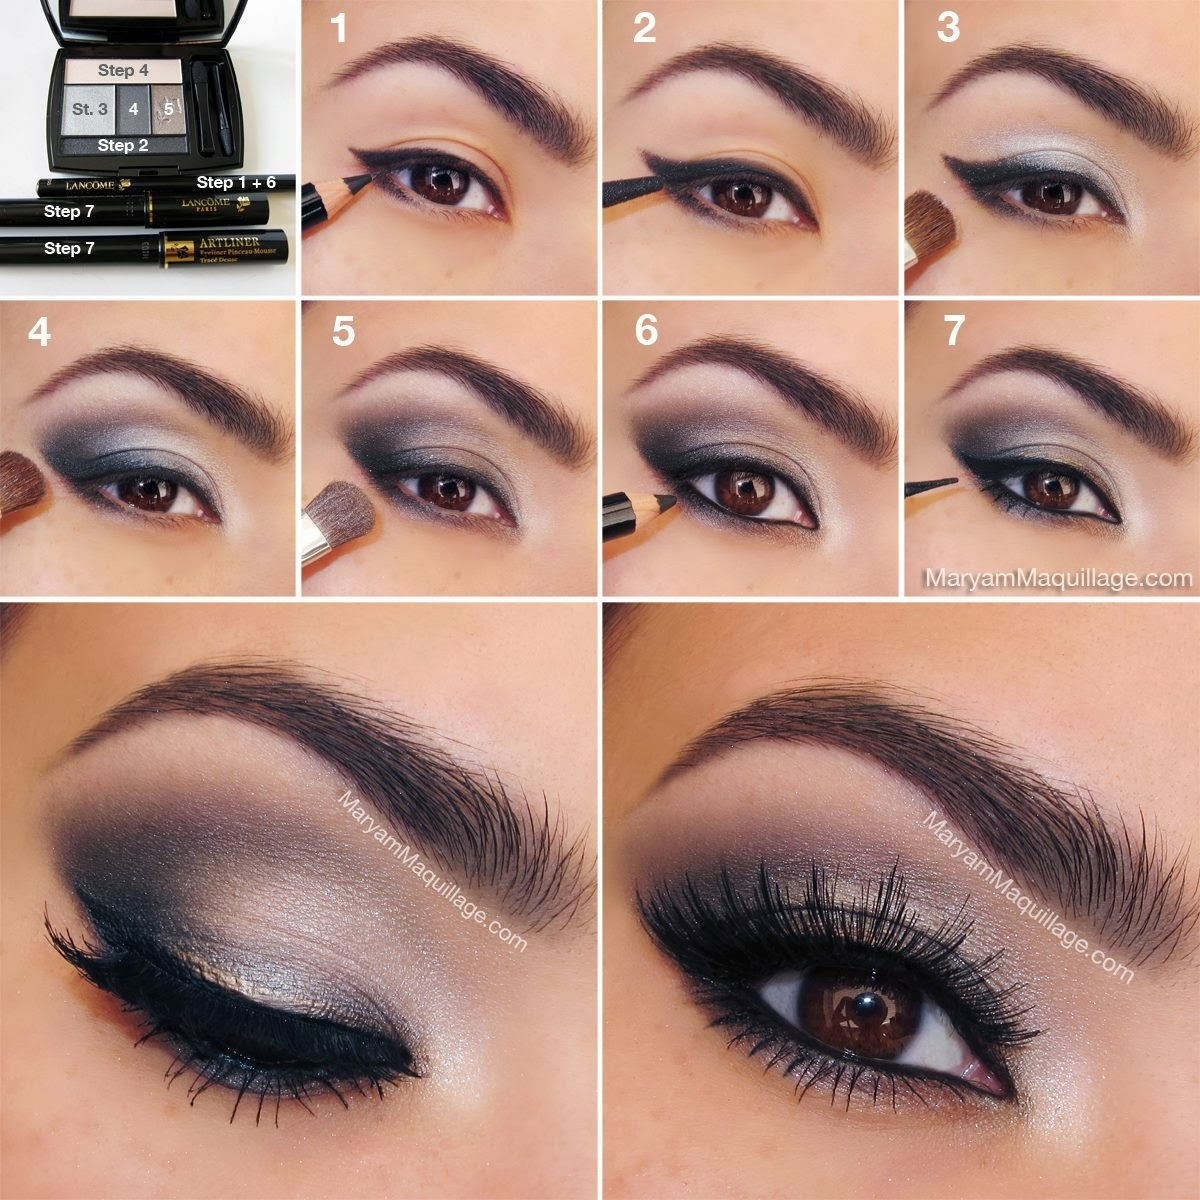 Smokey Eye Makeup Tutorial Step By Step - Style Arena intended for Smoky Eye Makeup Easy Steps